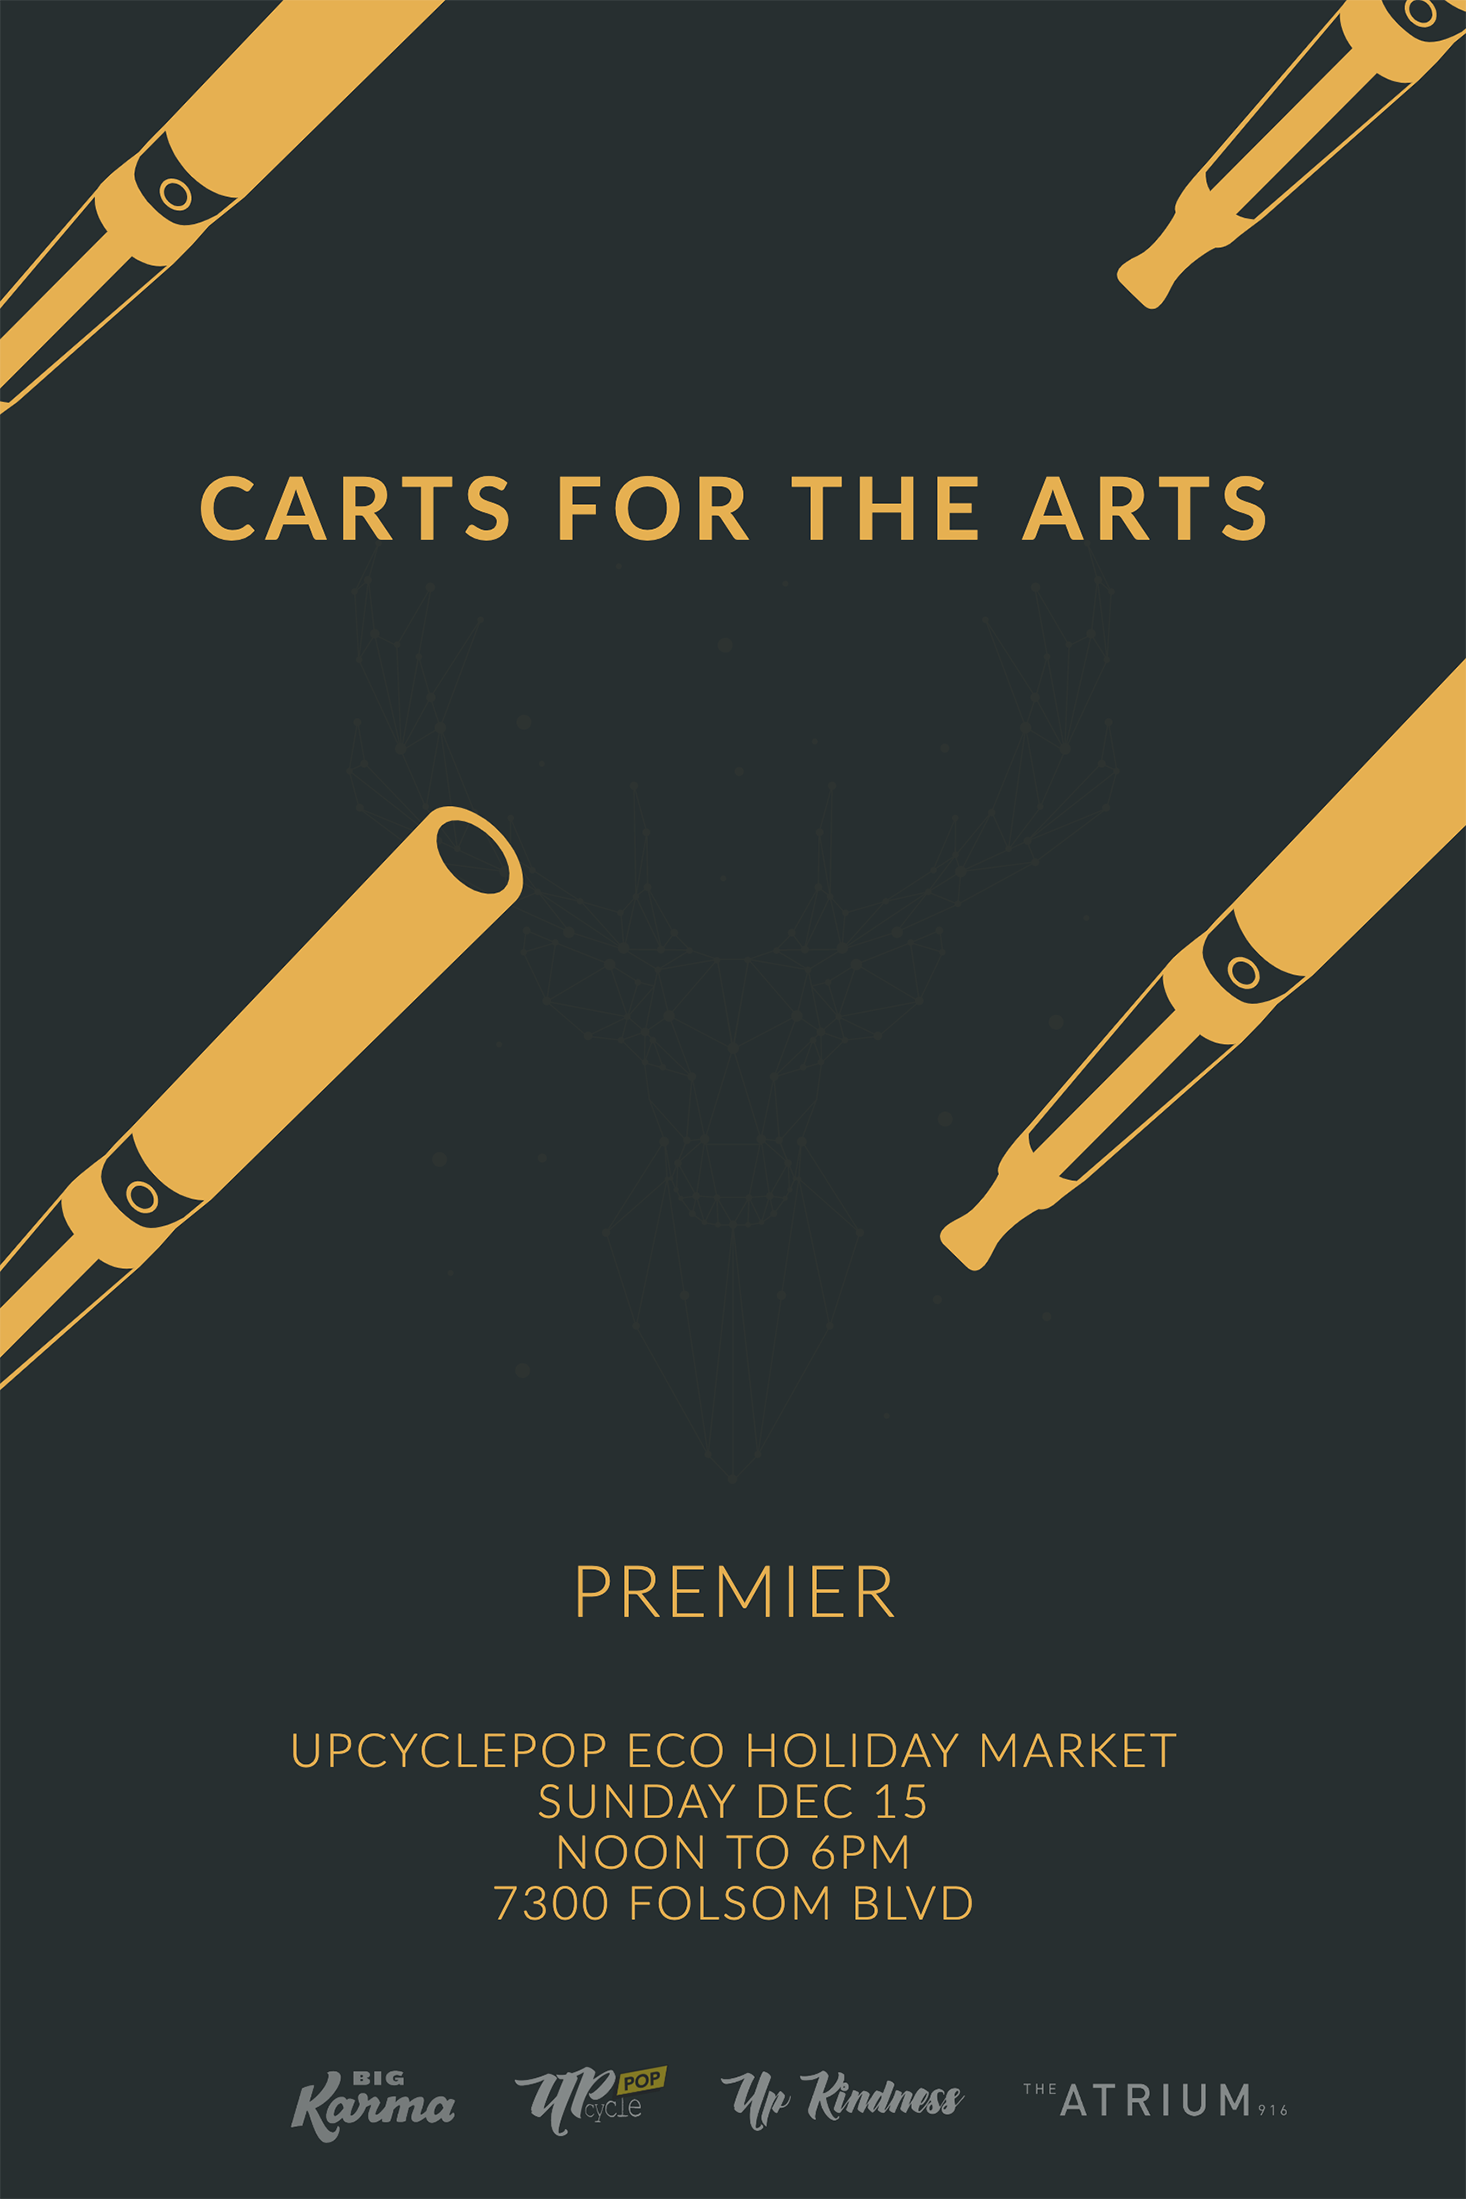 Carts for the arts premier - The Atrium & Upcyclep